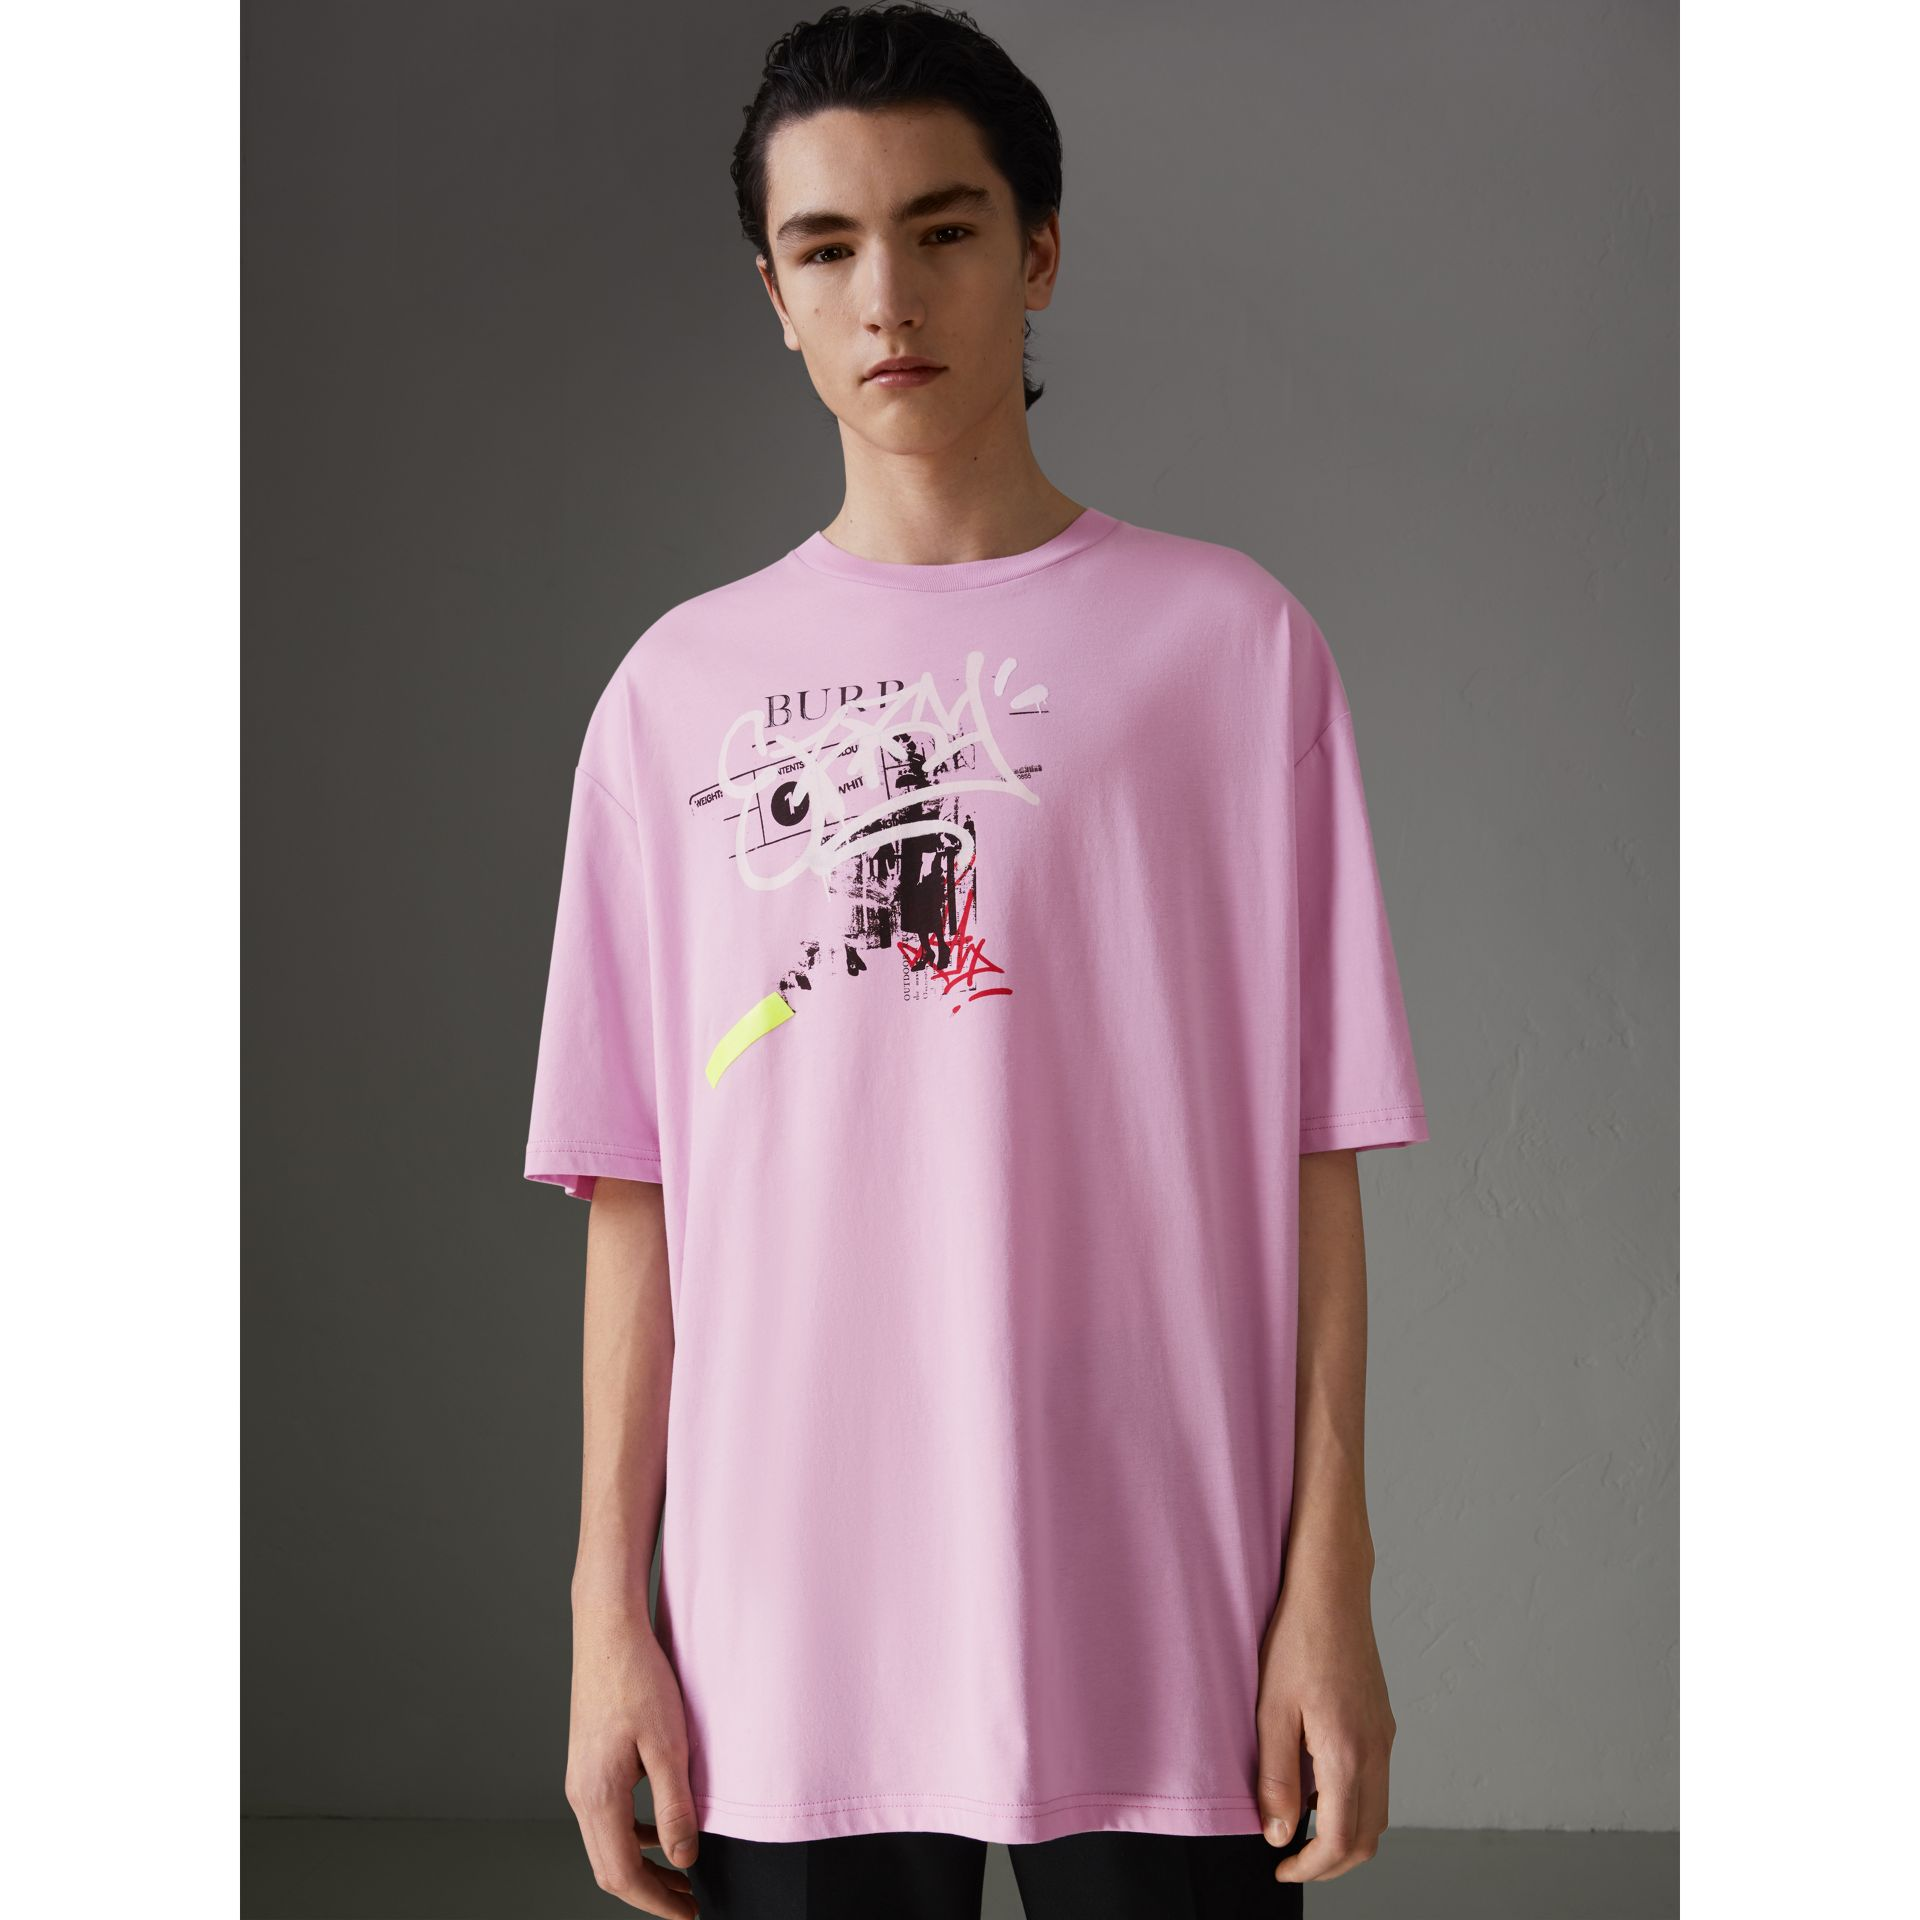 Graffitied Ticket Print Cotton T-shirt in Light Pink - Men | Burberry United Kingdom - gallery image 4